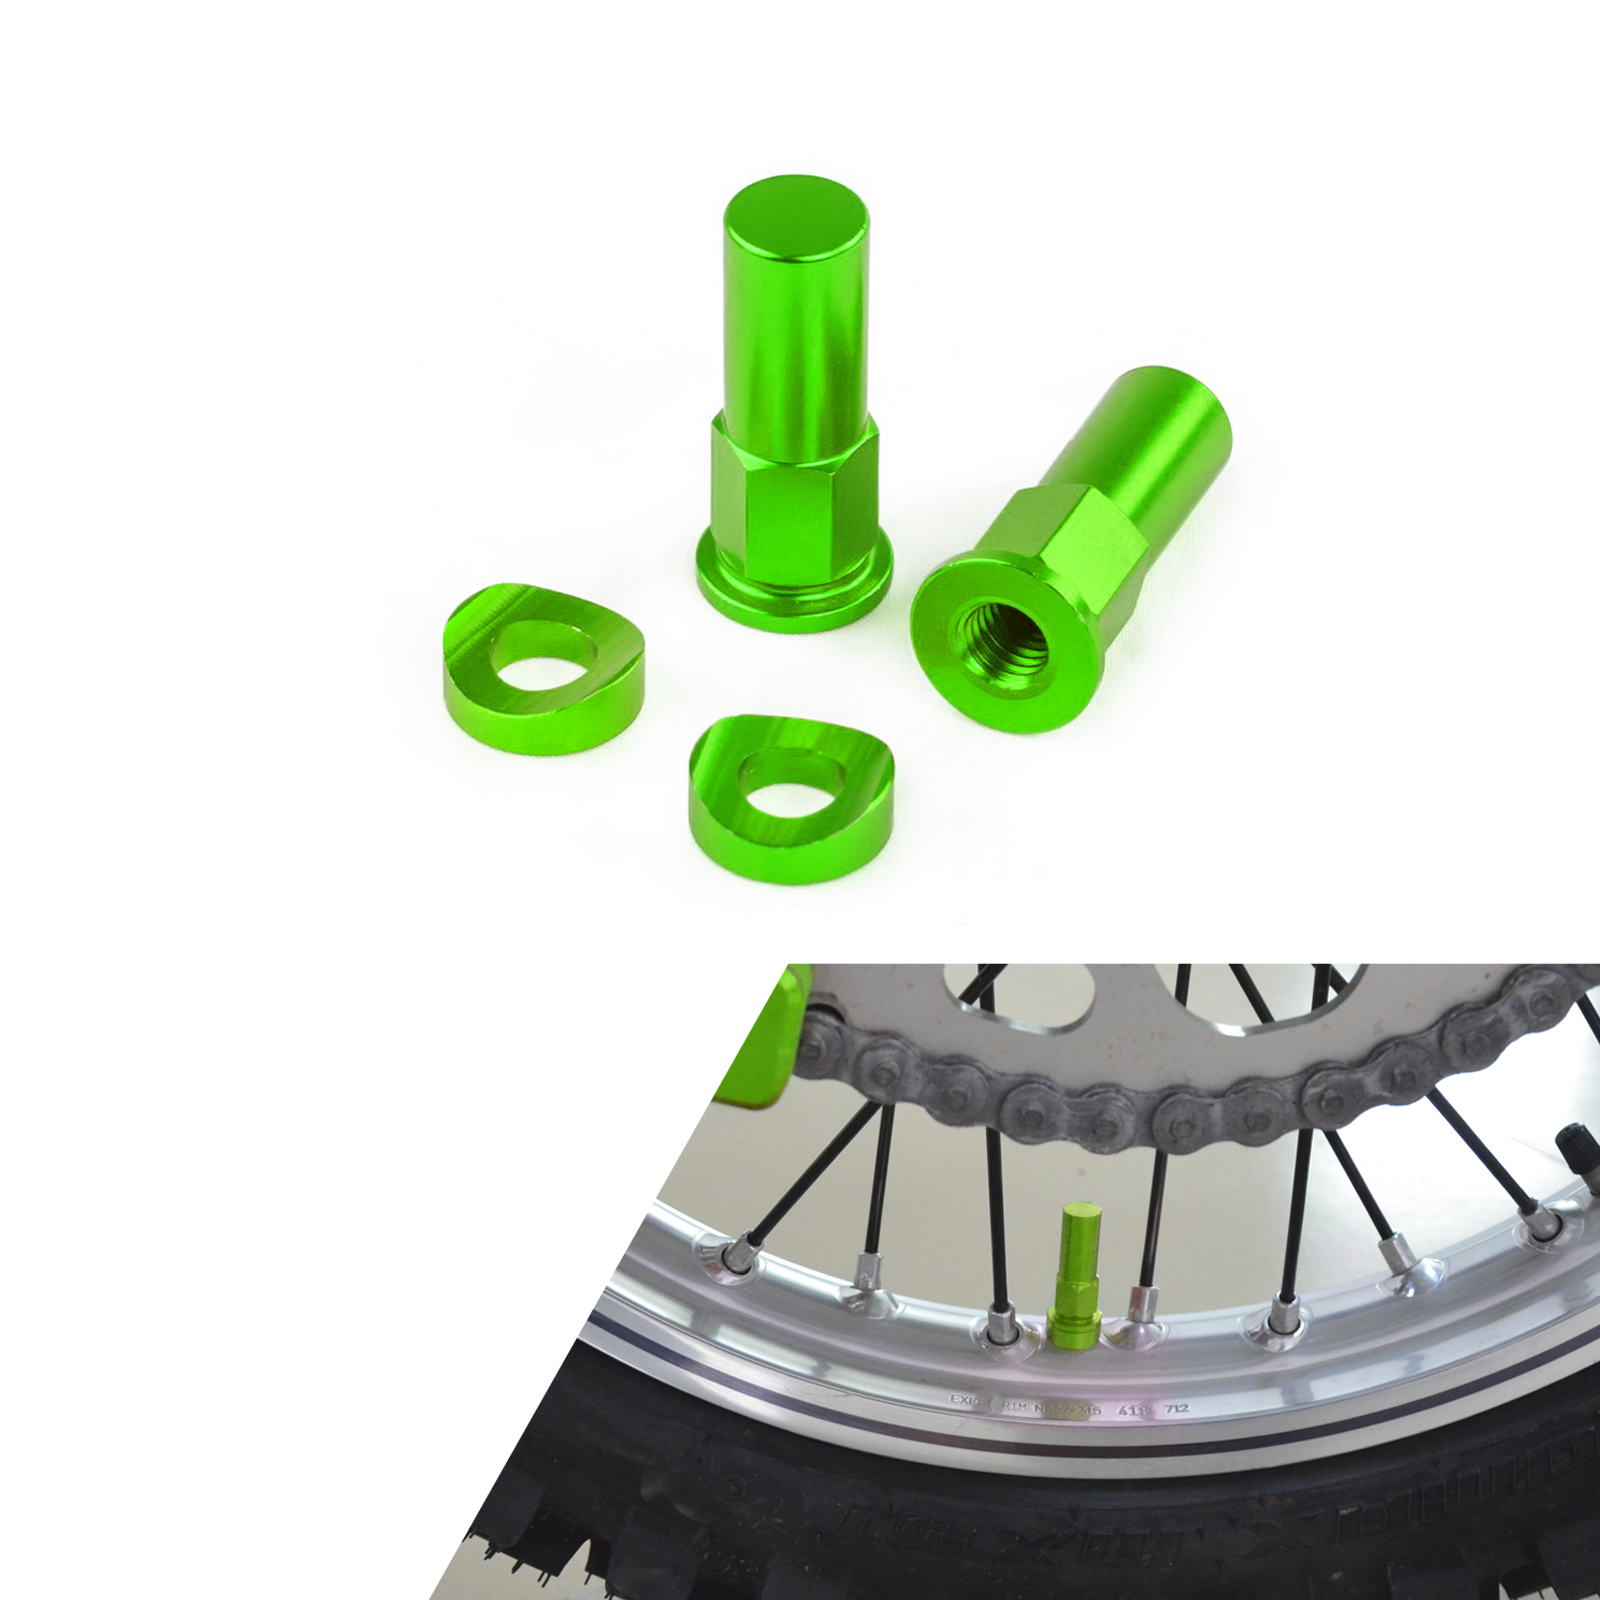 Nouveau Motocross Dirt Bike Jante Écrou Spacer Kit Pour CR YZ KX RM CRF YZF KXF RMZ 85 125 250 450